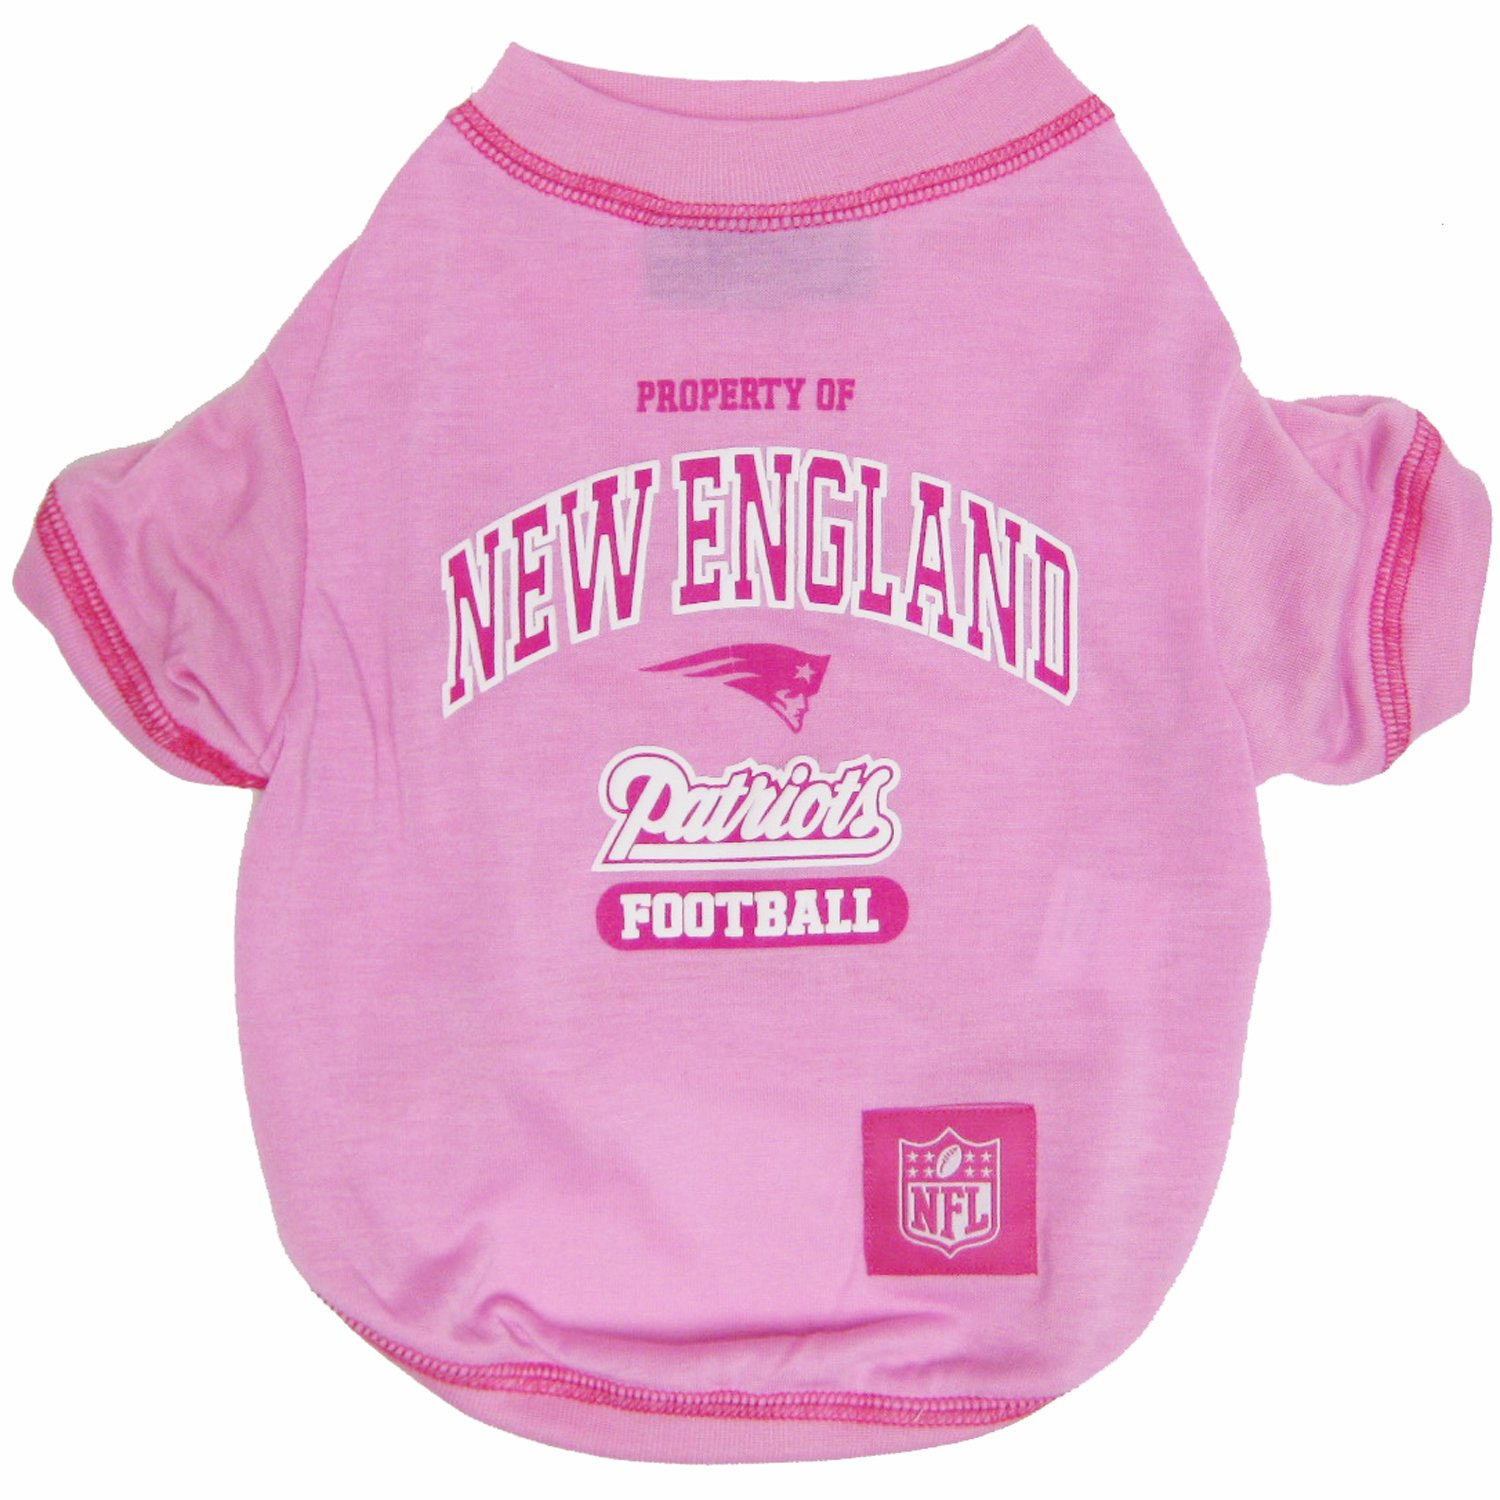 NFL PINK PET APPAREL TOP QUALITY /& Cute pet clothing for all NFL Fans JERSEYS /& T-SHIRTS for DOGS /& CATS available in 32 NFL TEAMS /& 4 sizes Licensed